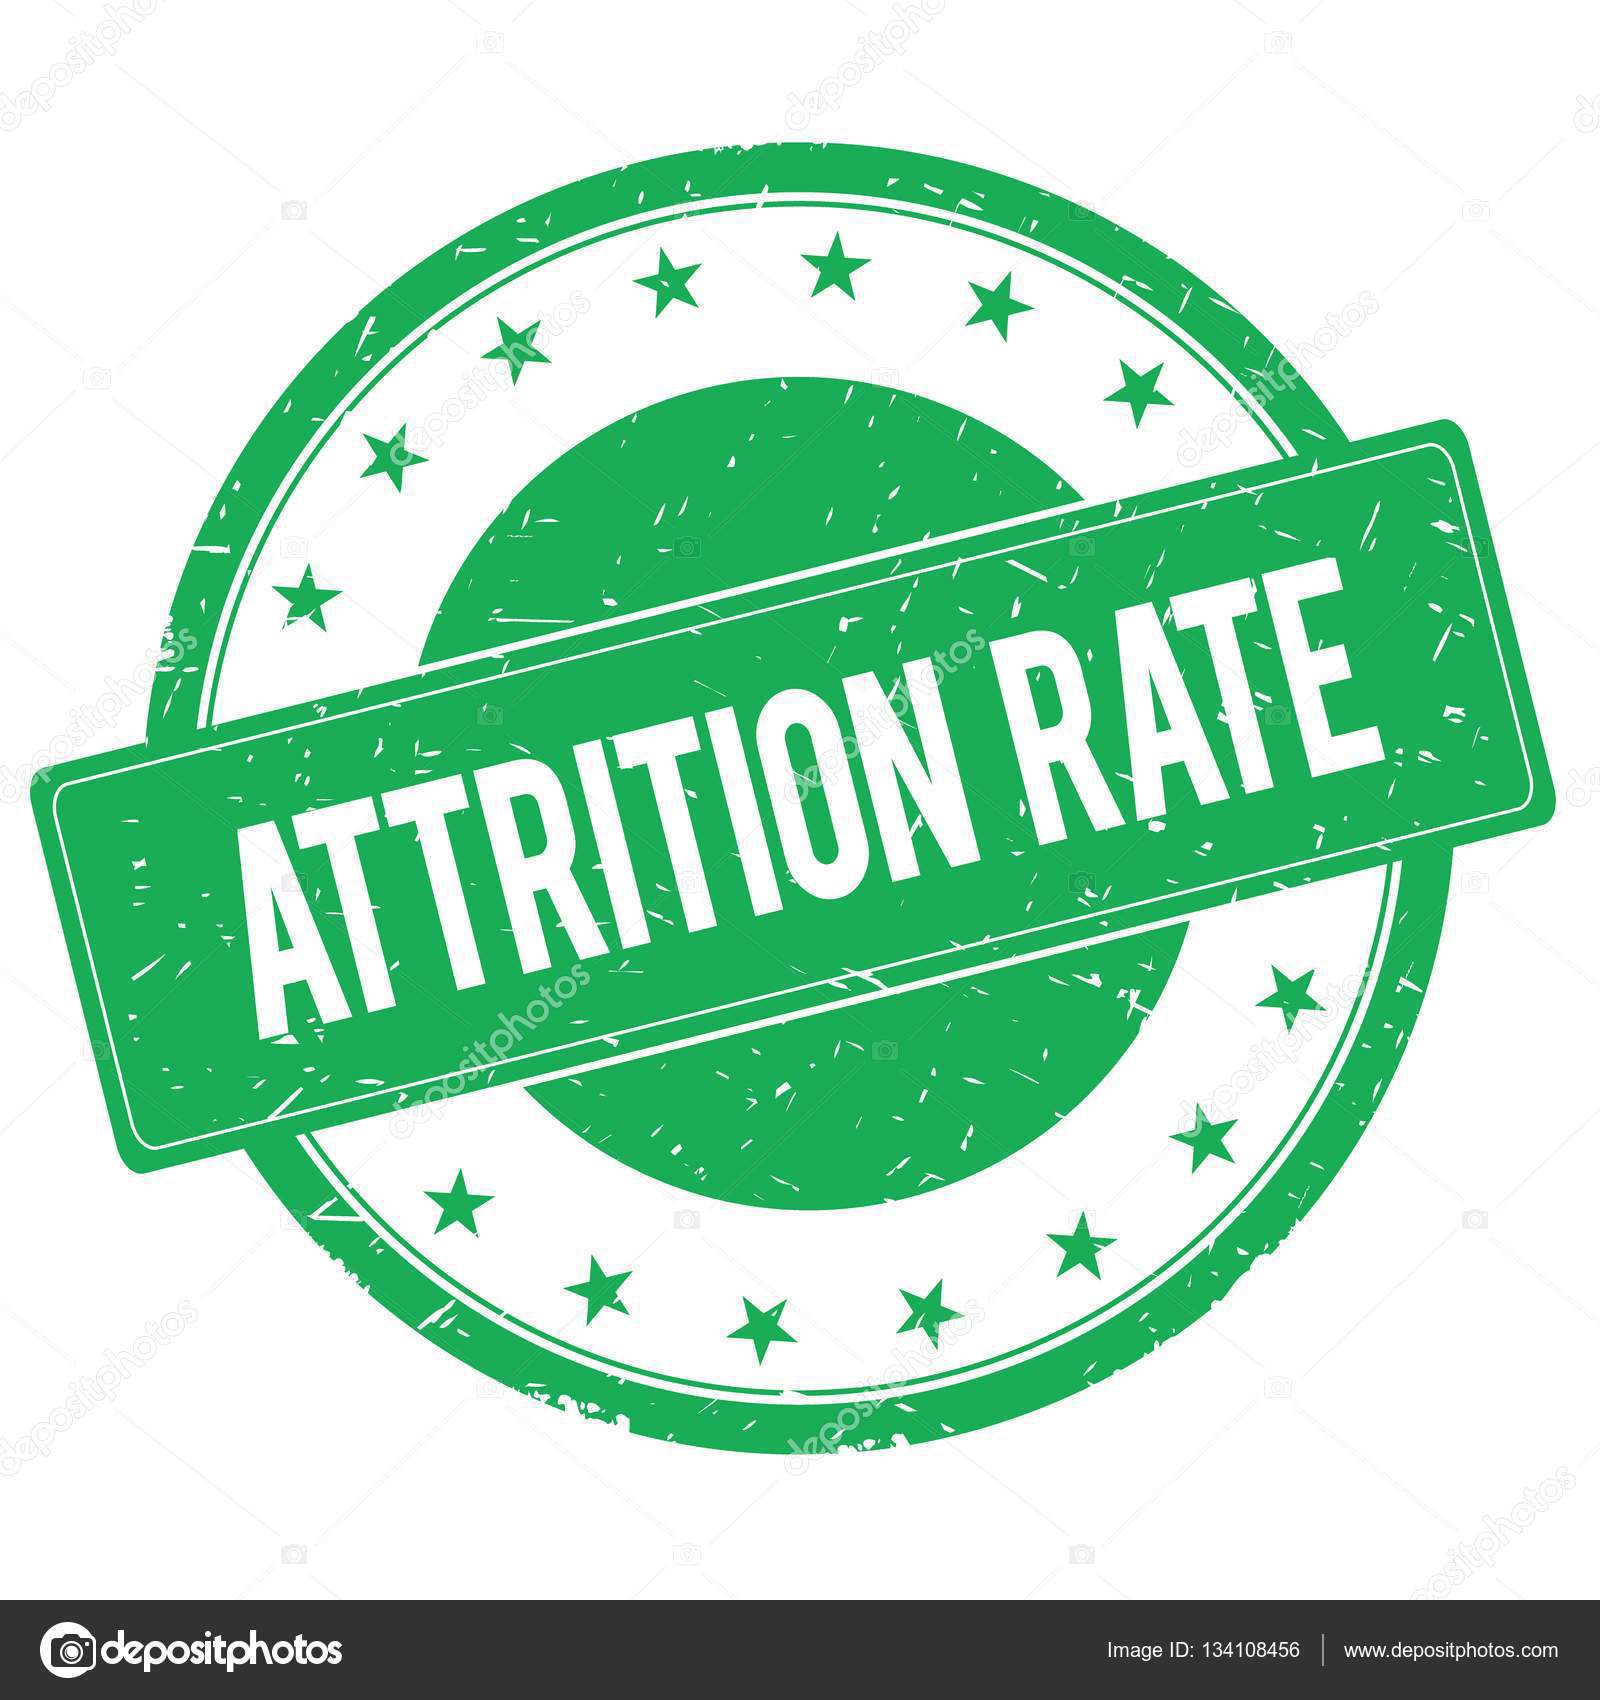 ATTRITION RATE stamp sign green — Stock Photo © ionutparvu